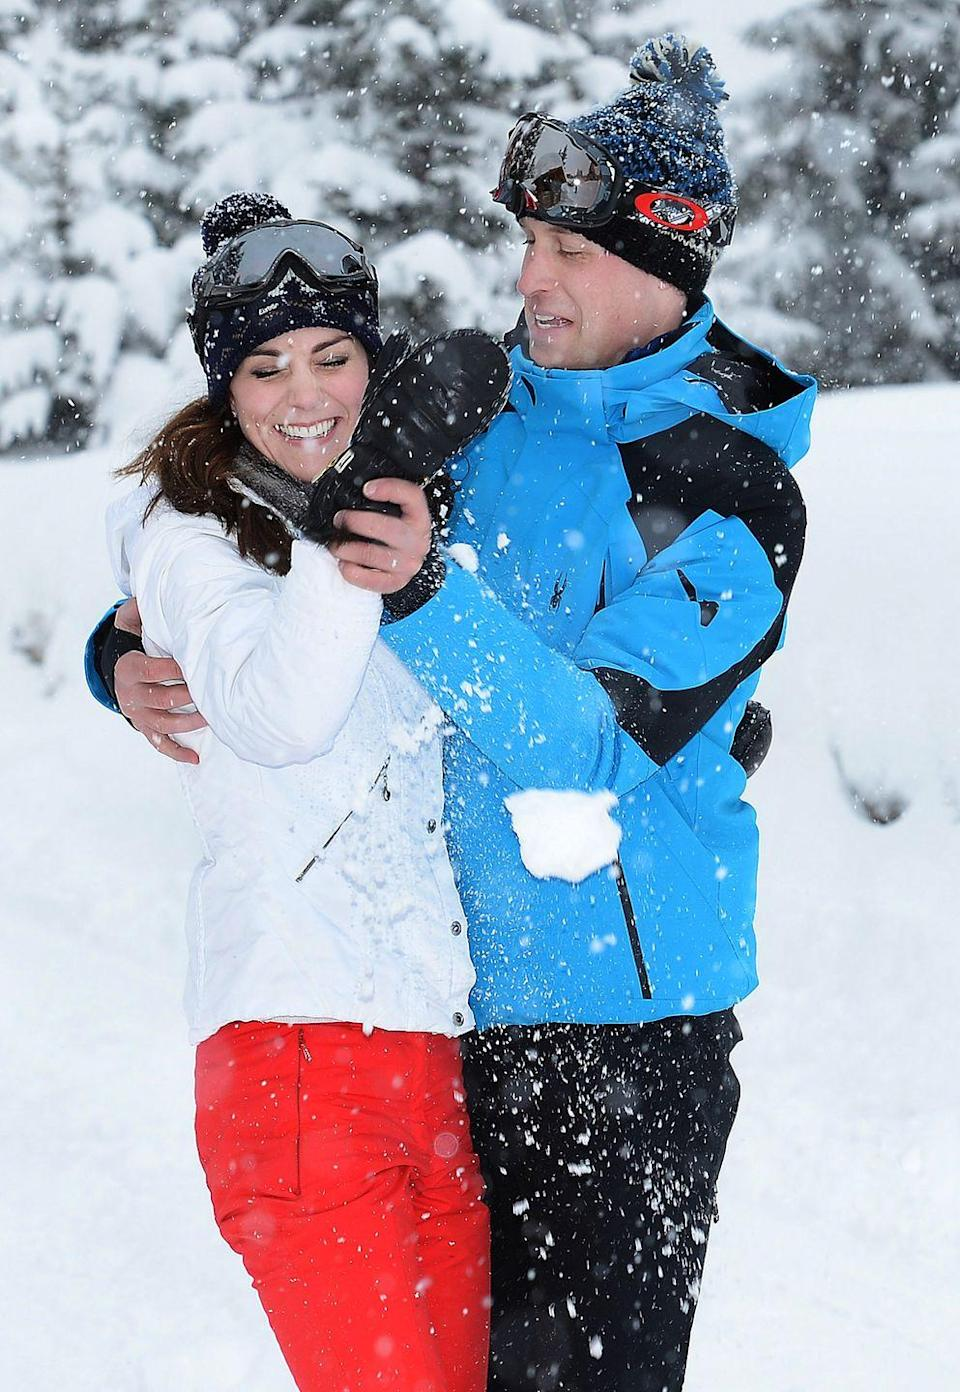 """<p>The royal couple <a href=""""https://www.townandcountrymag.com/society/tradition/g26116256/royal-family-snow-photos/"""" rel=""""nofollow noopener"""" target=""""_blank"""" data-ylk=""""slk:enjoy a skiing trip"""" class=""""link rapid-noclick-resp"""">enjoy a skiing trip</a> in the French Alps.<br></p>"""